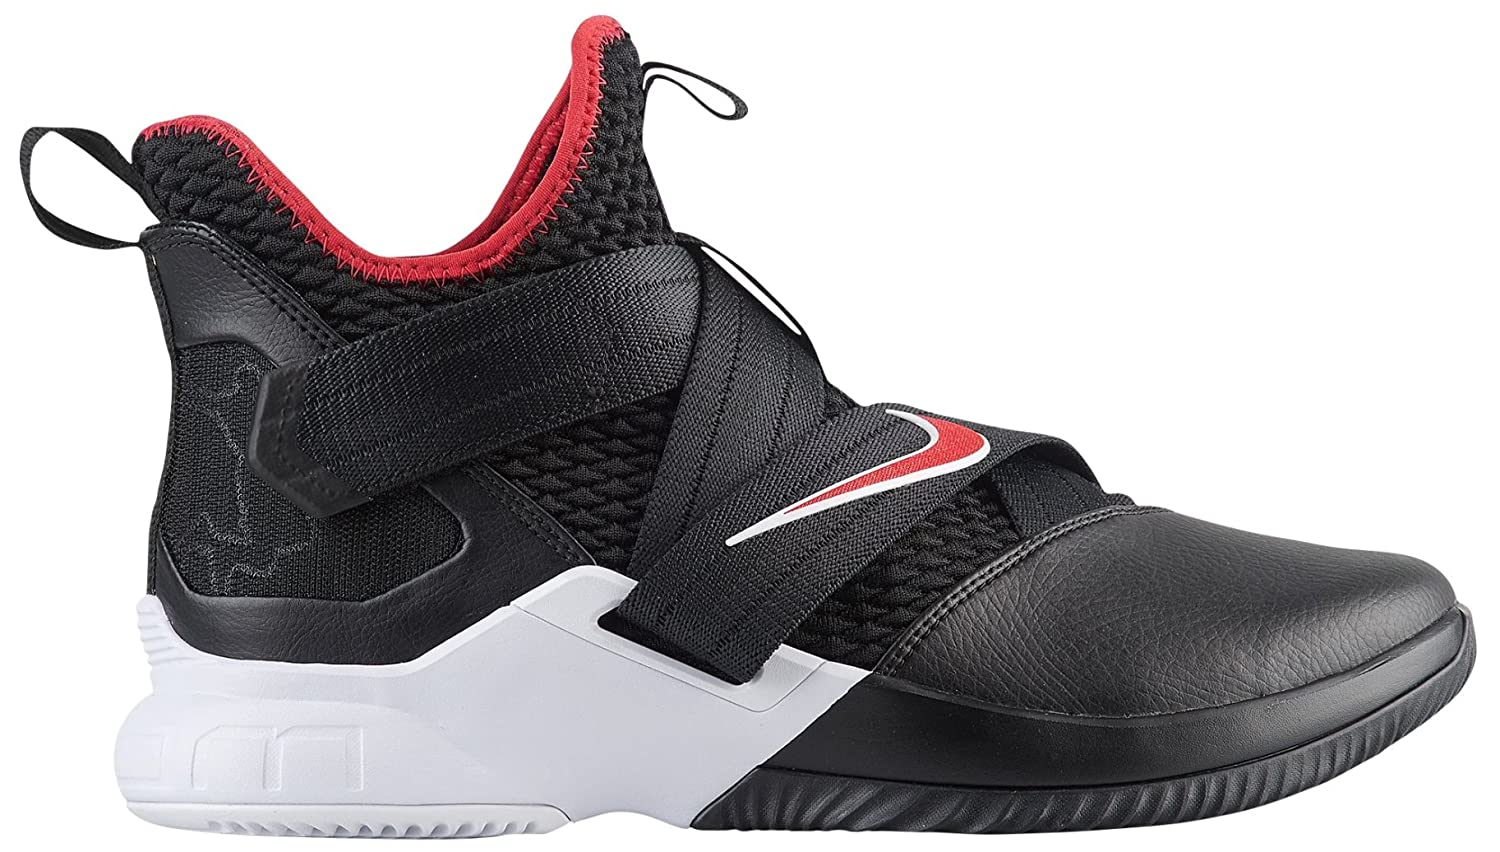 buy popular eb809 6c684 Amazon.com   Nike Men s Zoom Lebron Soldier XII Basketball Shoes (11.5,  Black Red White)   Basketball